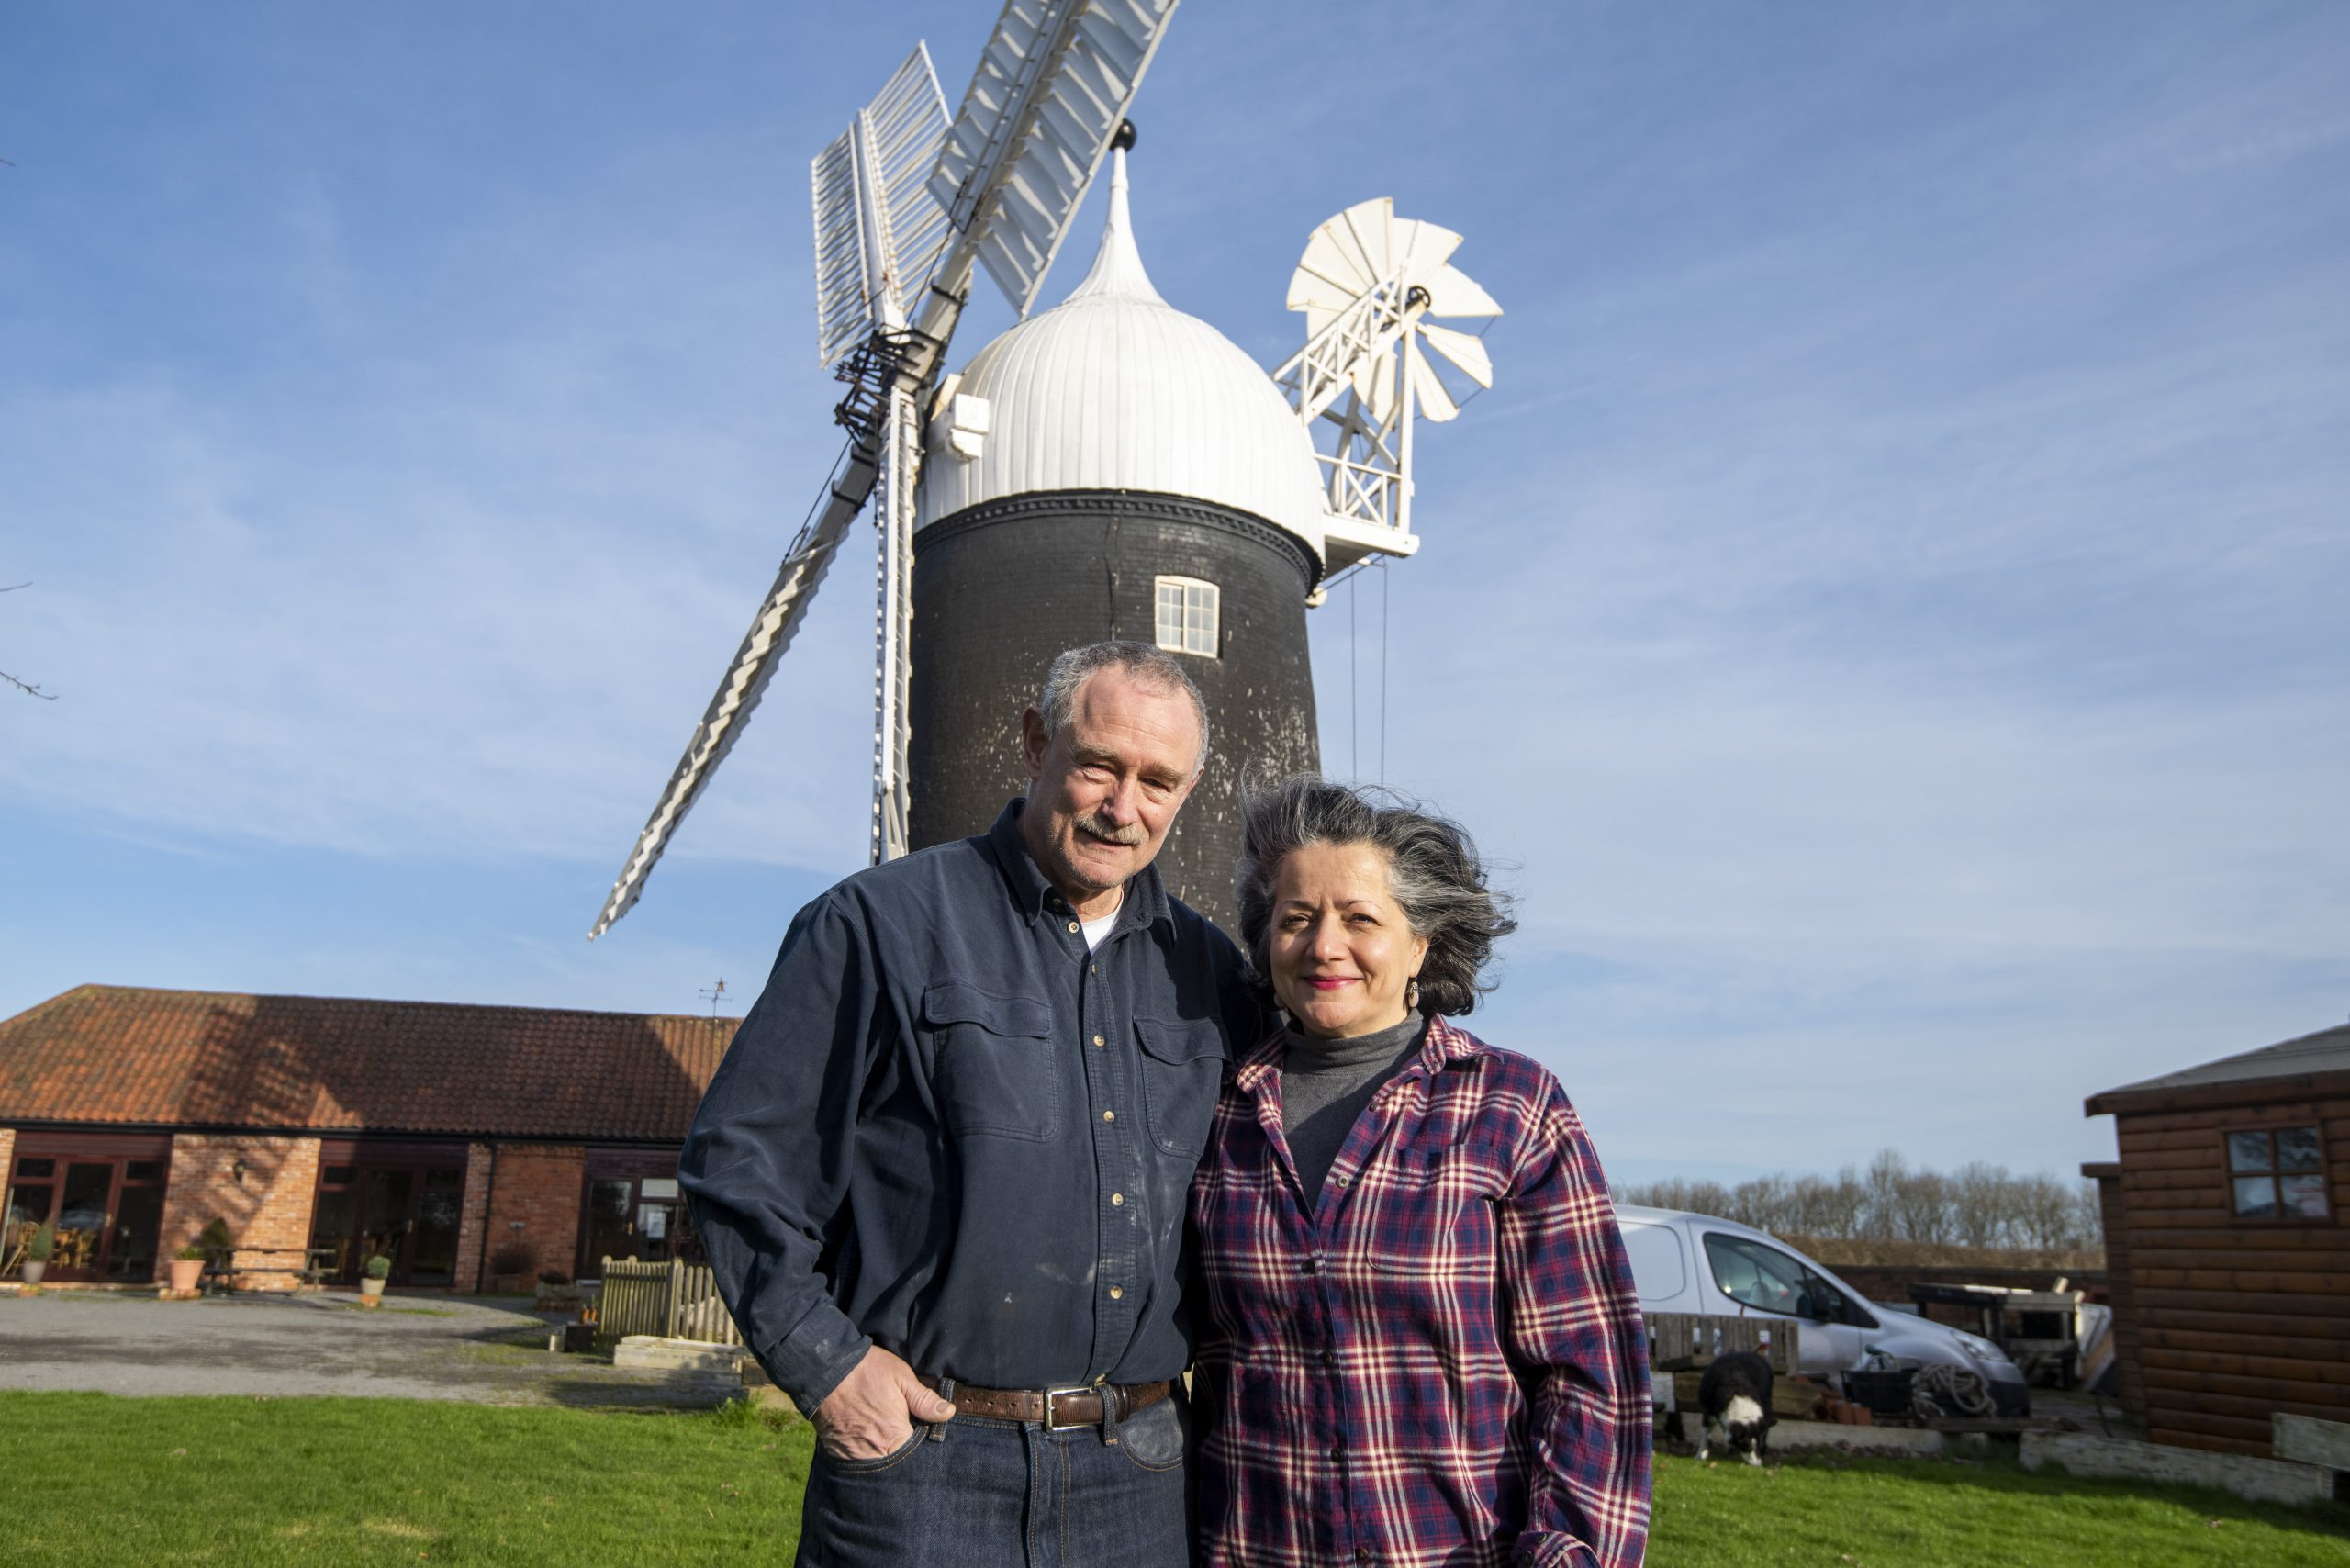 Fari and Paul Wyman Tuxford Windmill scaled